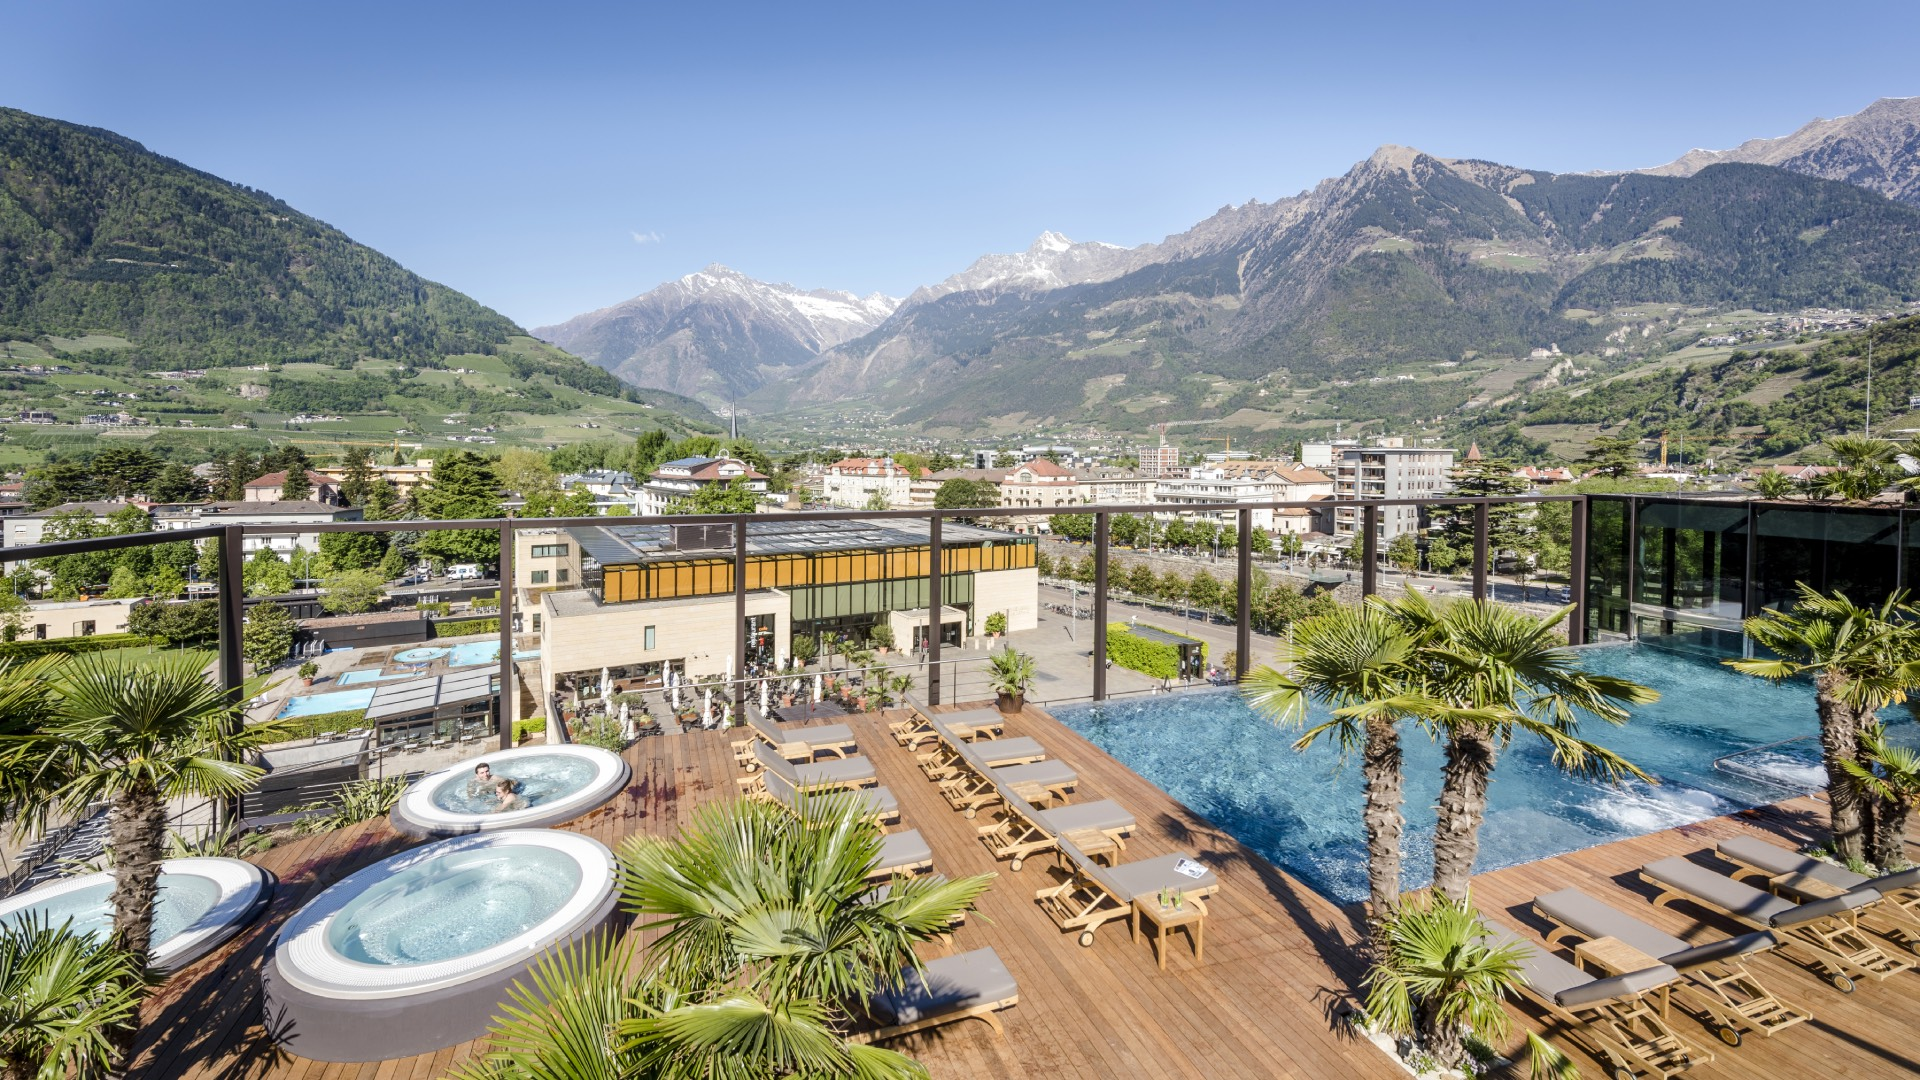 Wellnesshotel in Meran Südtirol Hotel Therme Meran